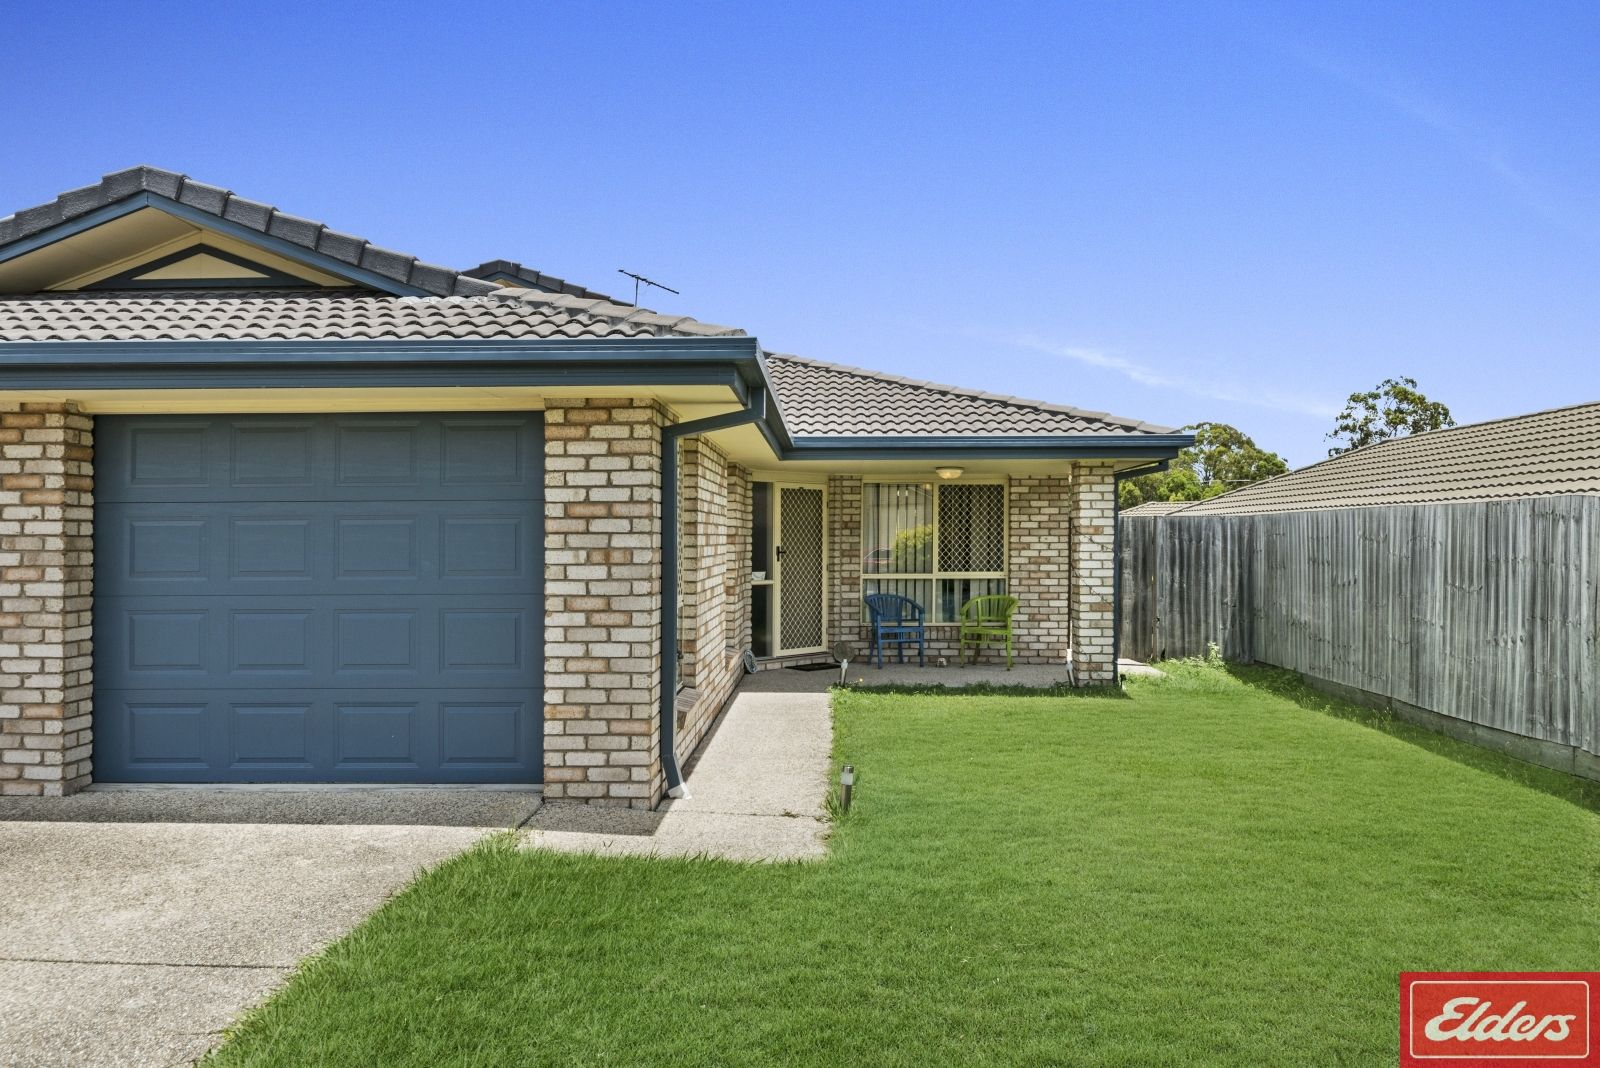 1/7 Adonis Court, Rothwell QLD 4022, Image 0